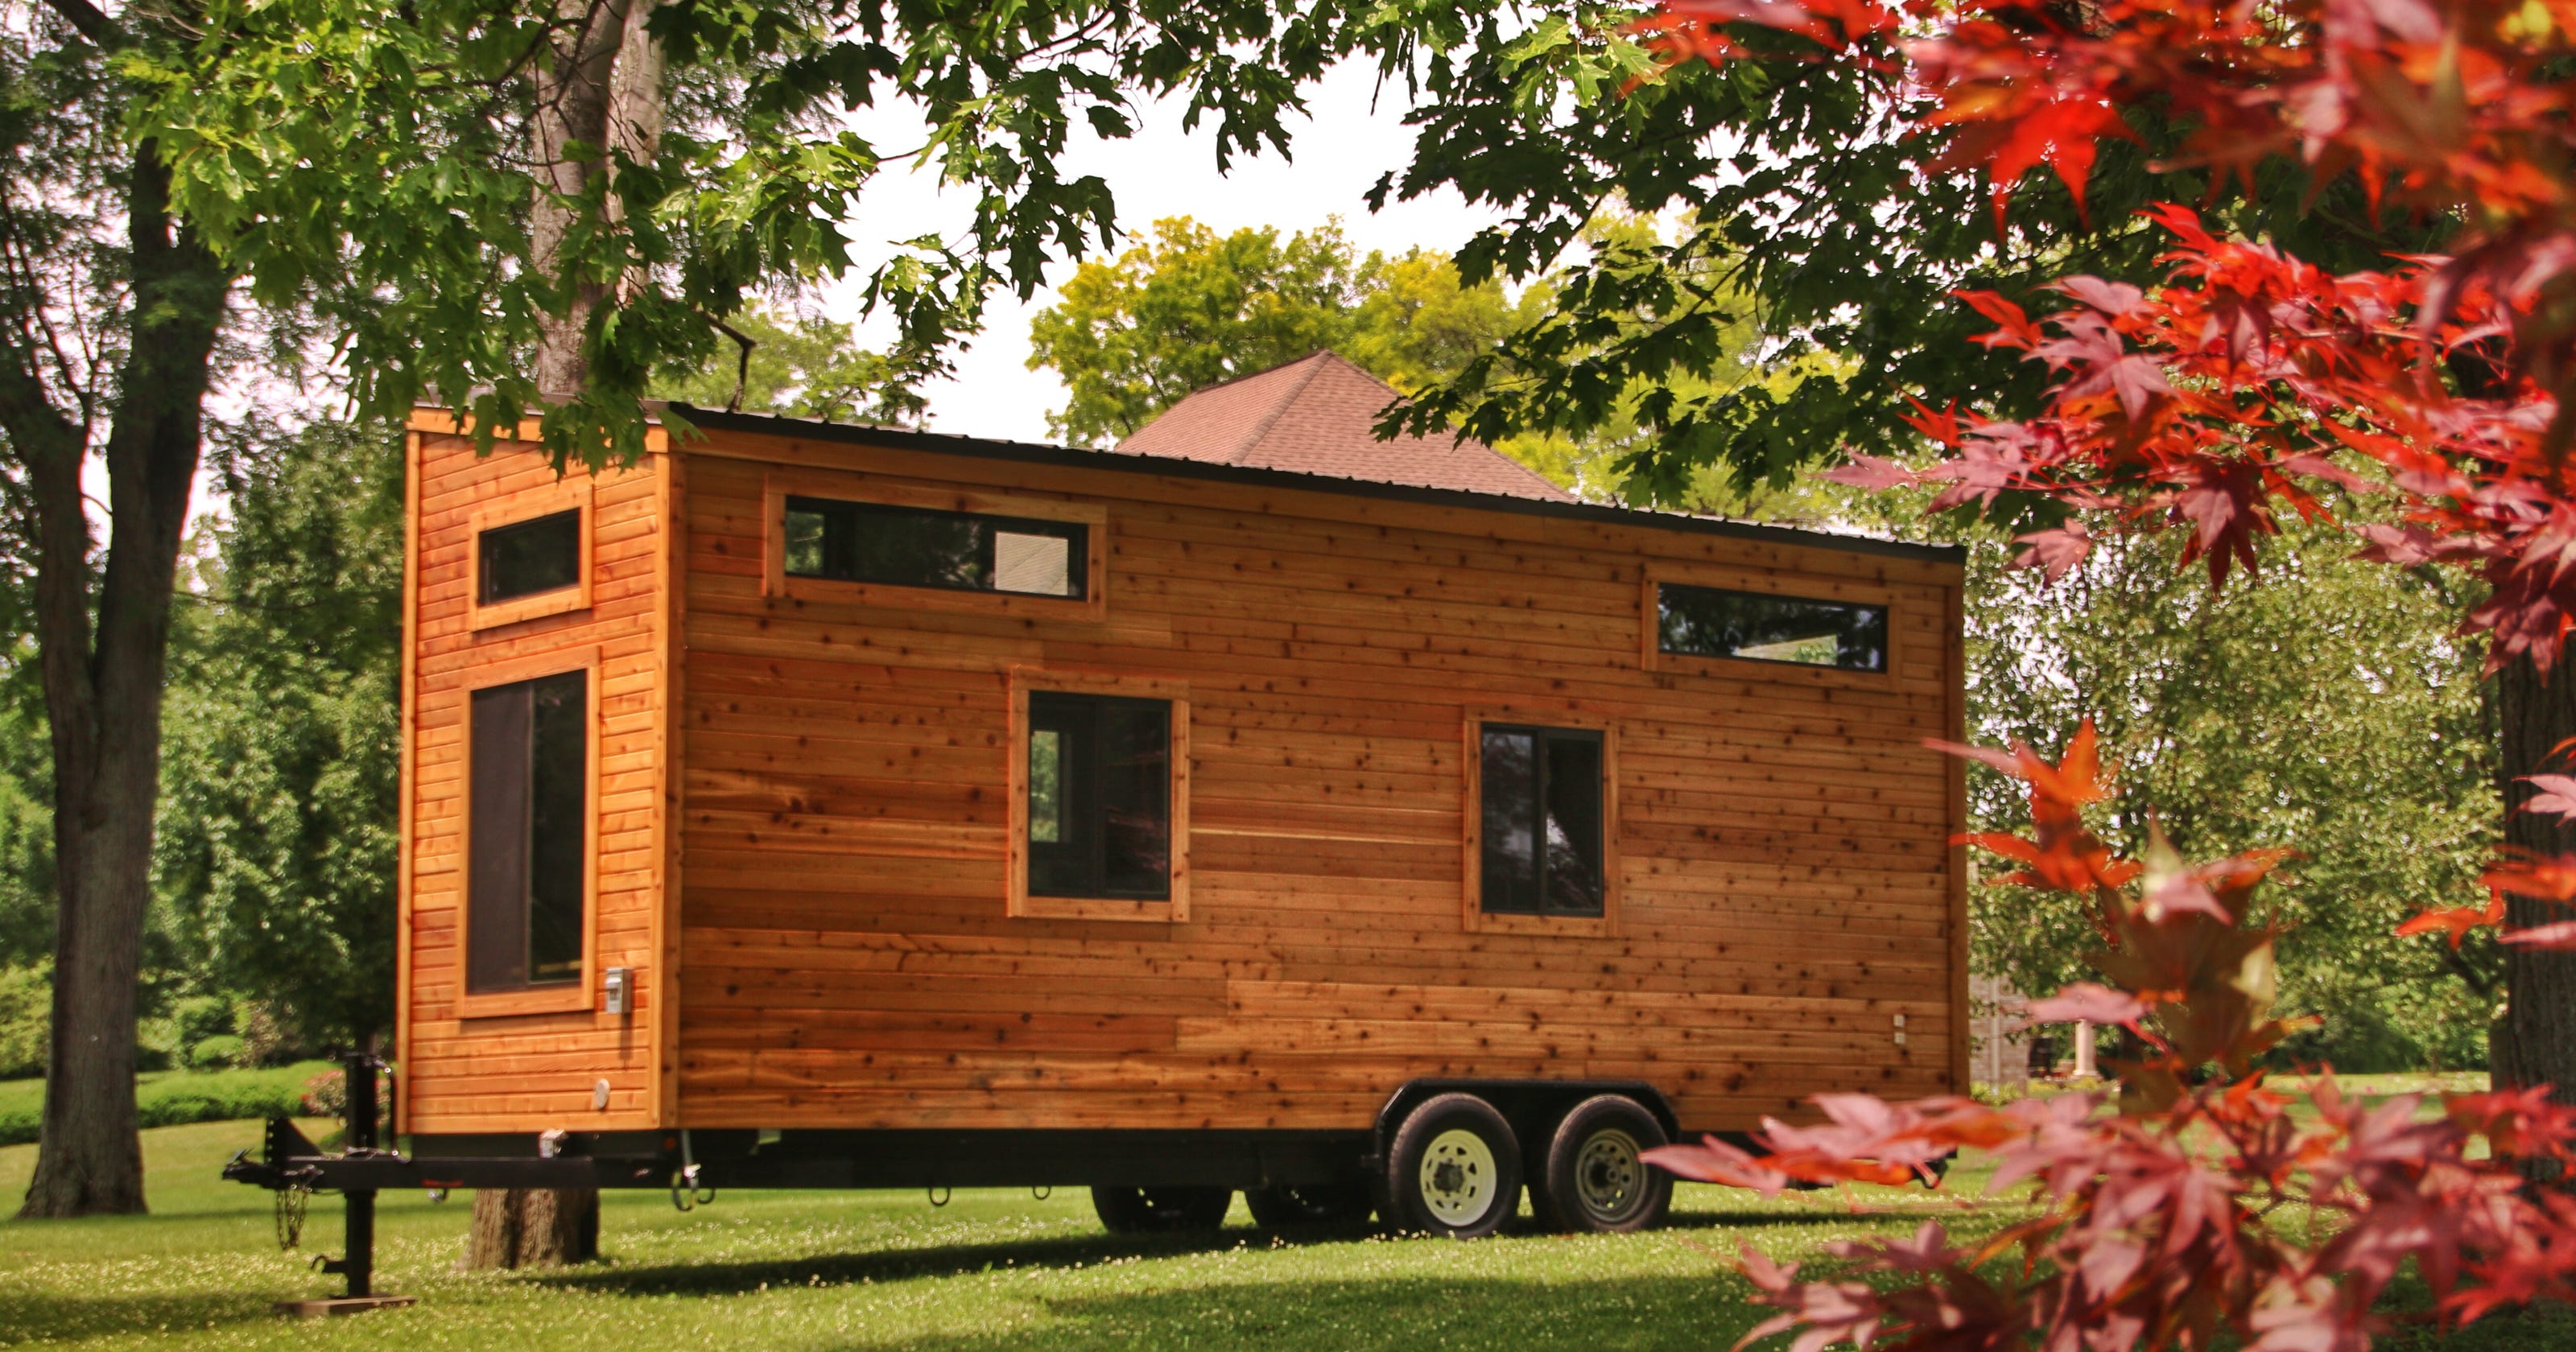 Big gathering of tiny houses coming to Colorado